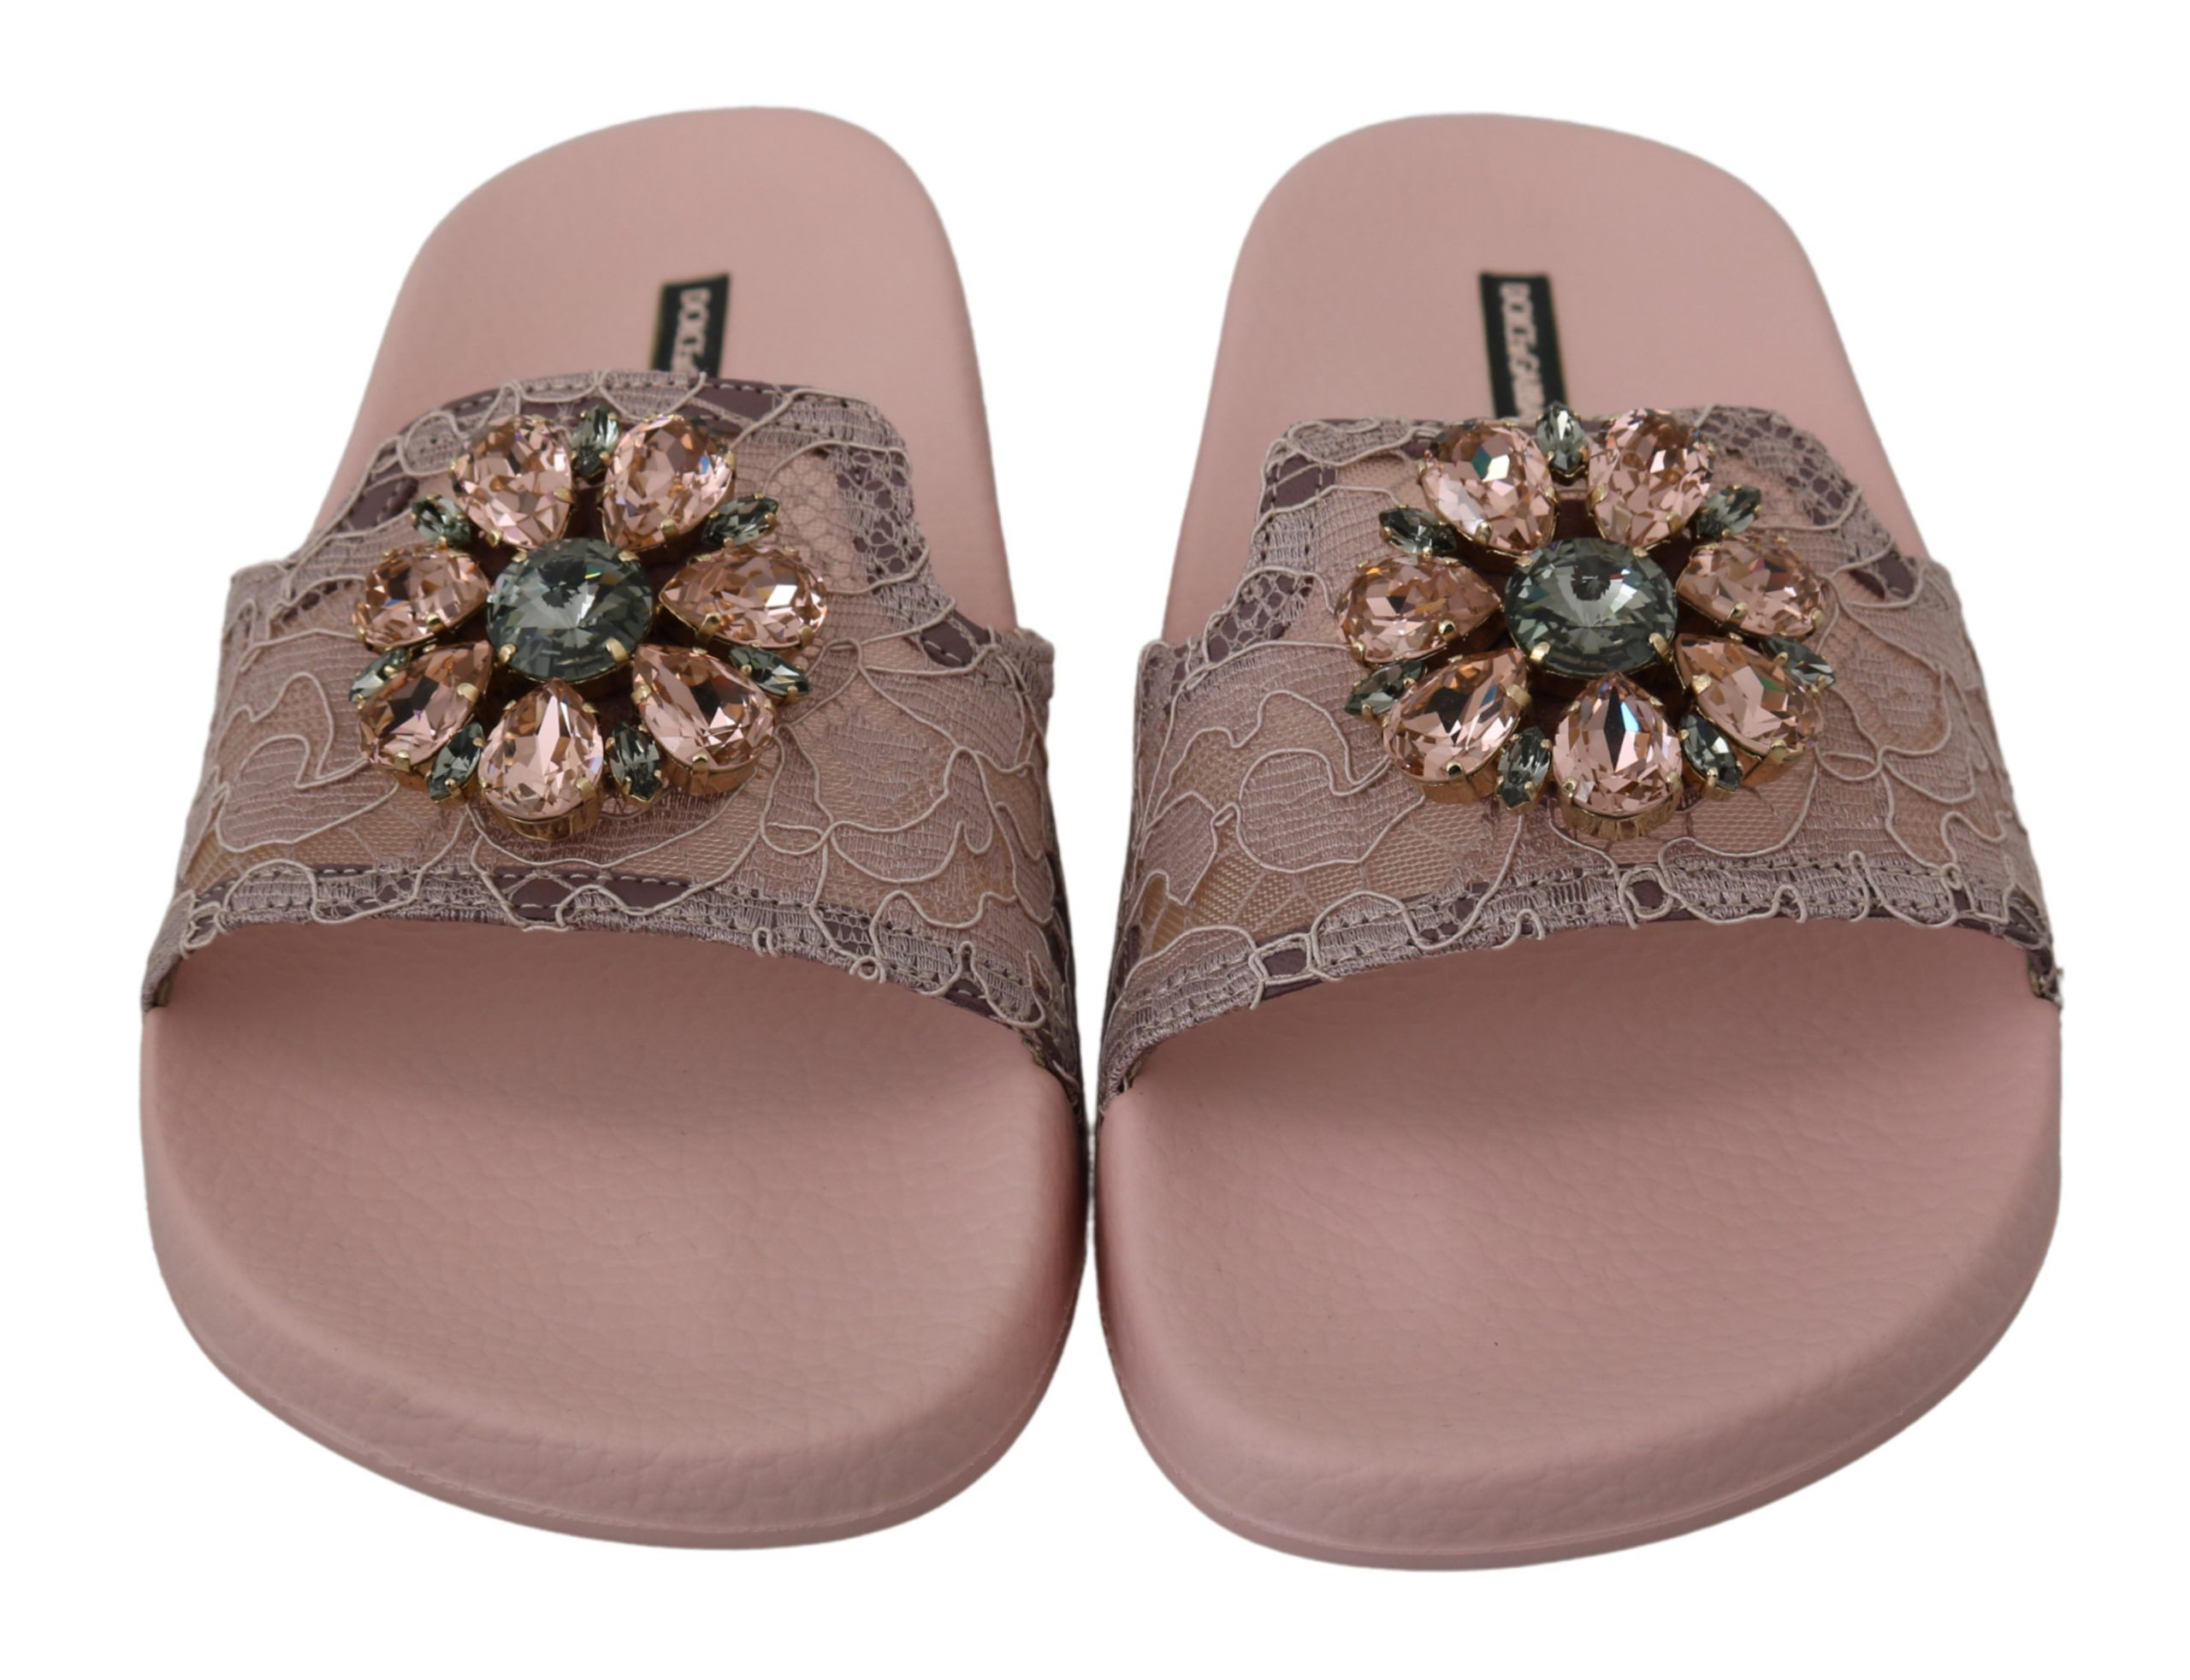 Dolce & Gabbana Pink Lace Crystal Sandals Slides Beach Shoes